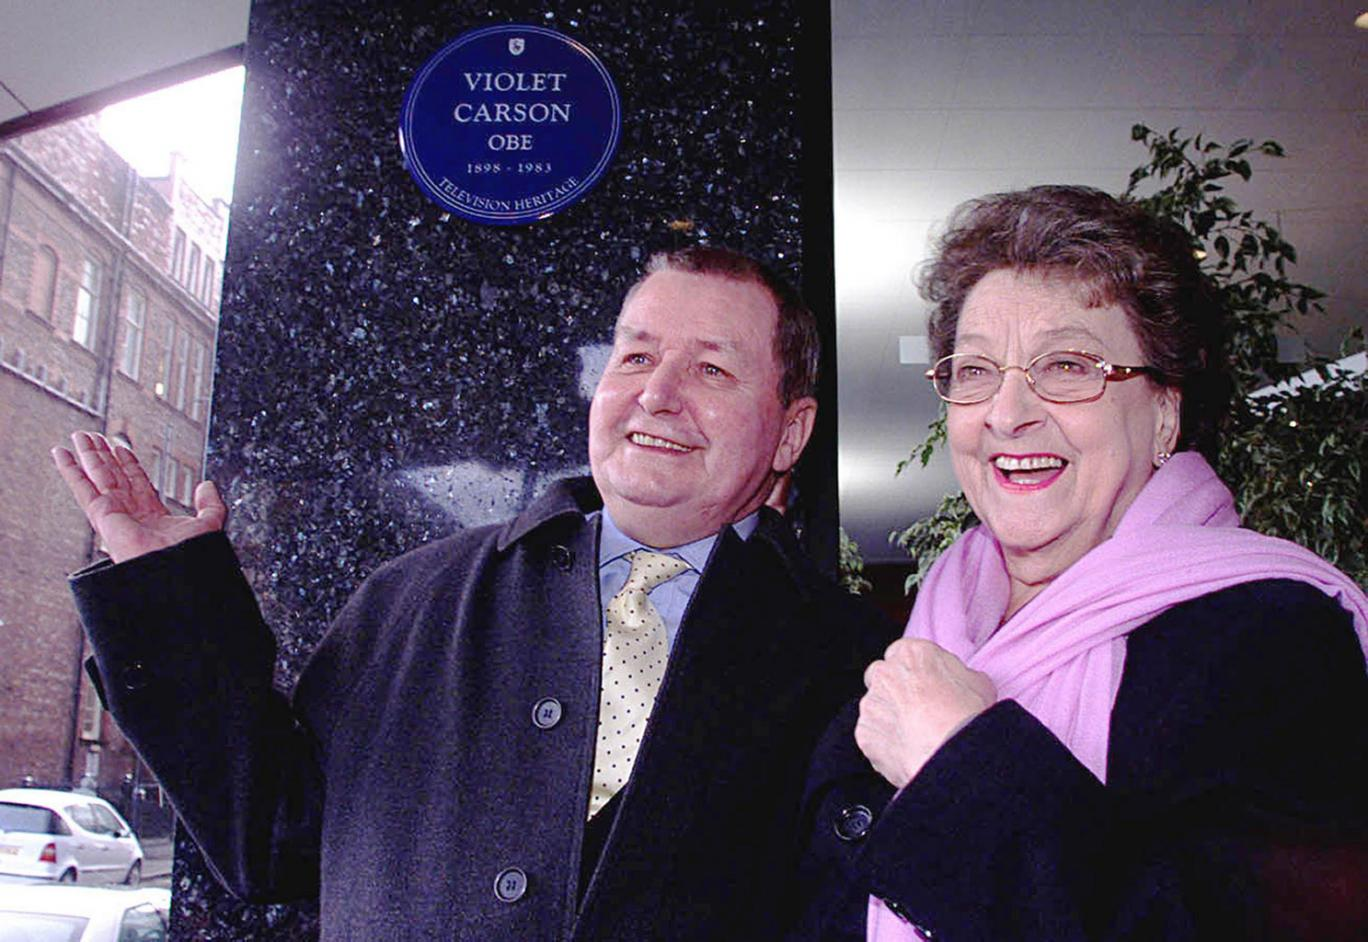 Coronation Street creator Tony Warren and Betty Driver at the Granada studios in Manchester unveiling a blue plaque in memory of Coronation Street legend Violet Carson. The actress who played barmaid Betty Turpin in the ITV soap for 42 years has died toda